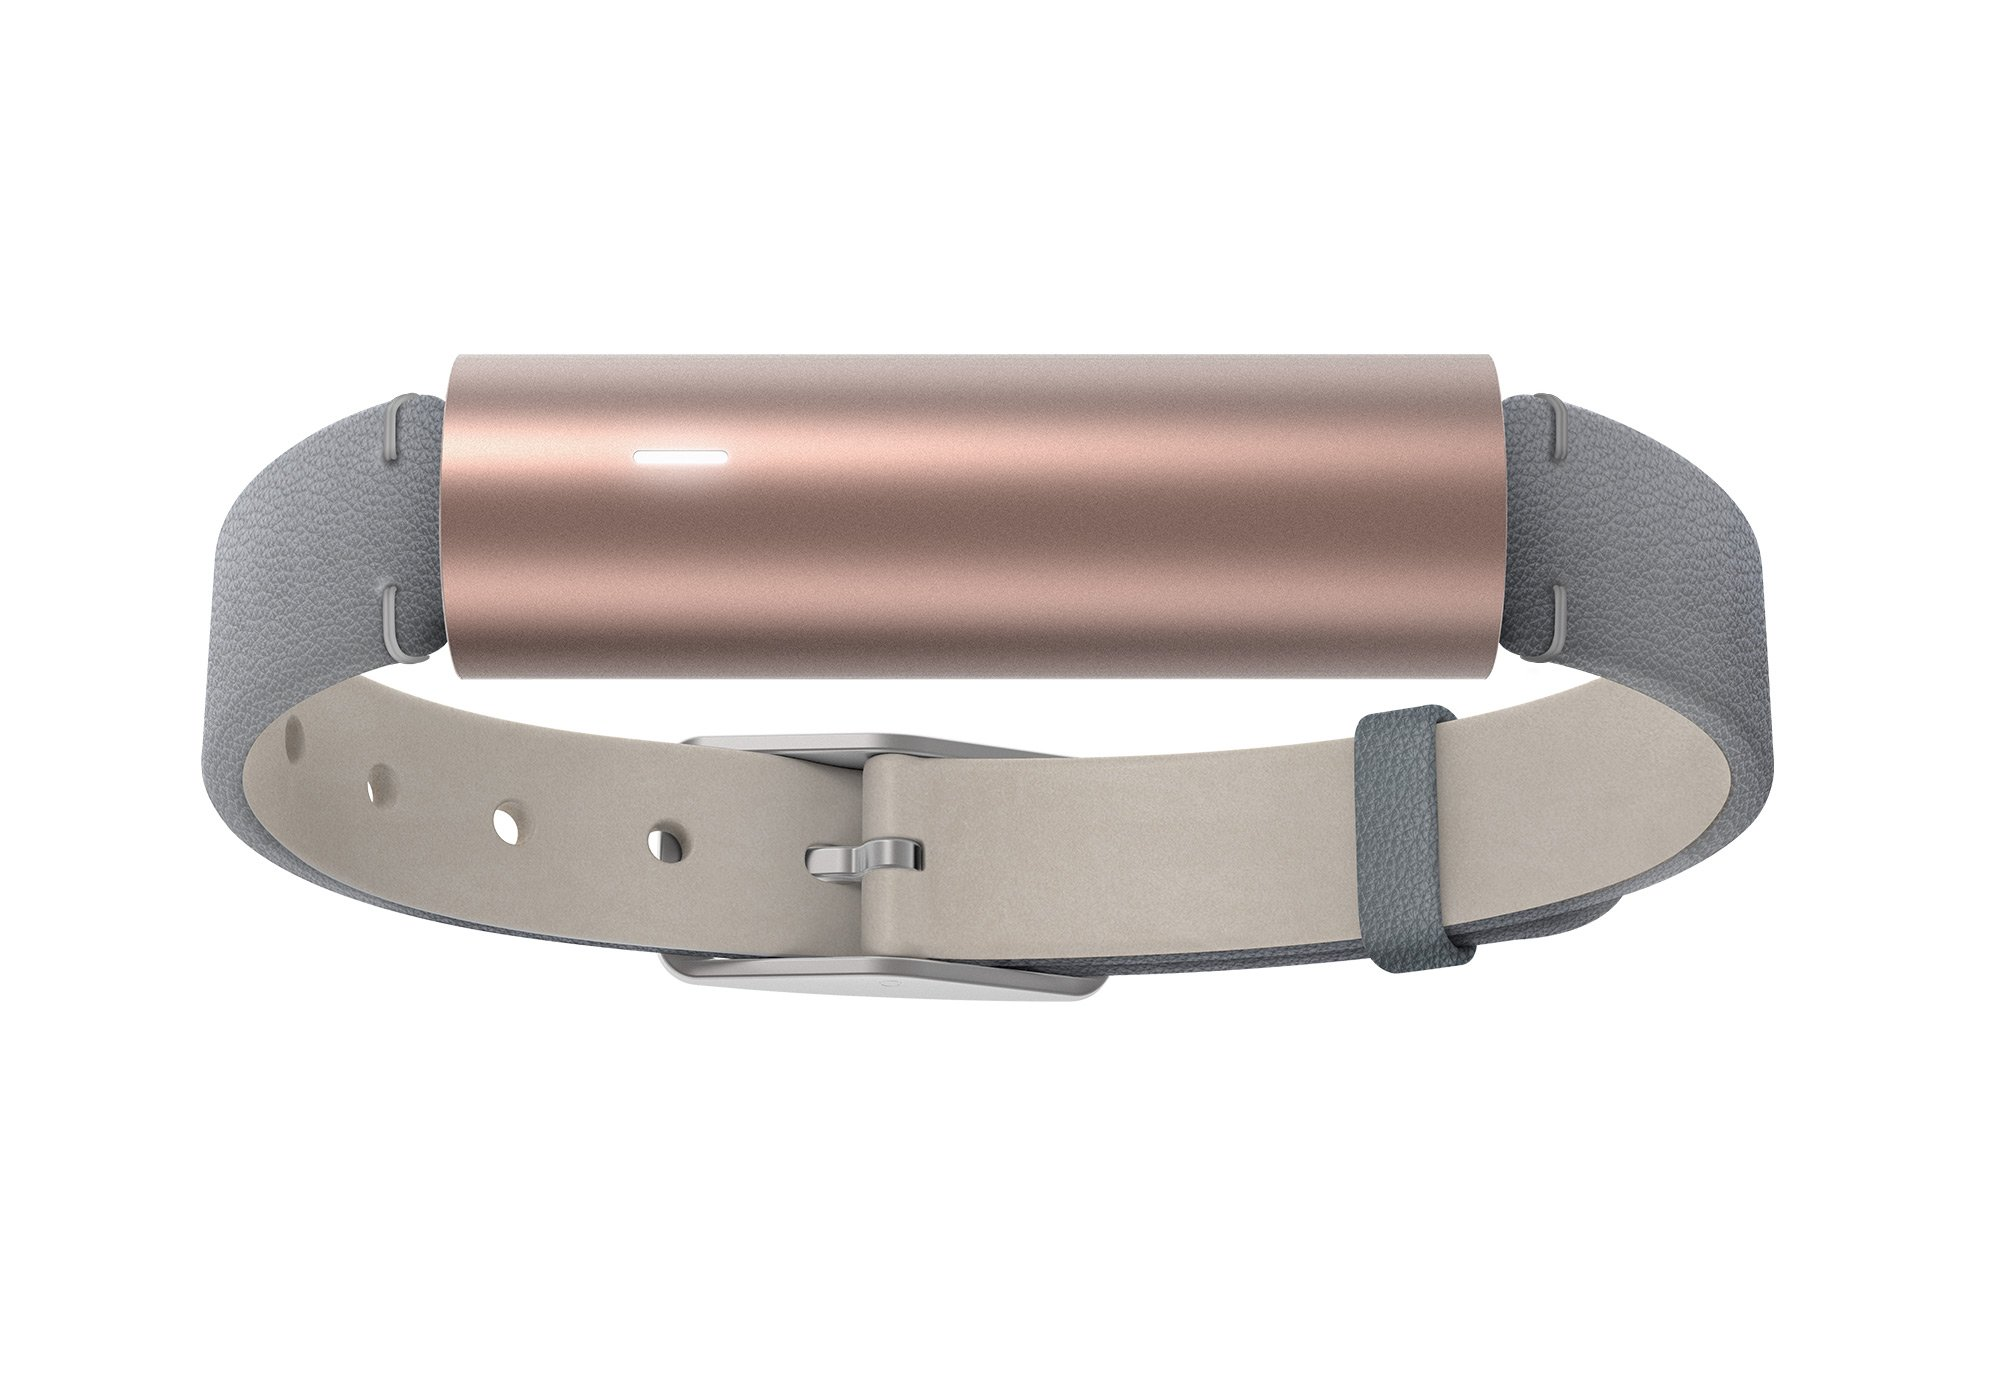 Misfit Ray - Fitness + Sleep Tracker with Gray Leather Band (Rose Gold)